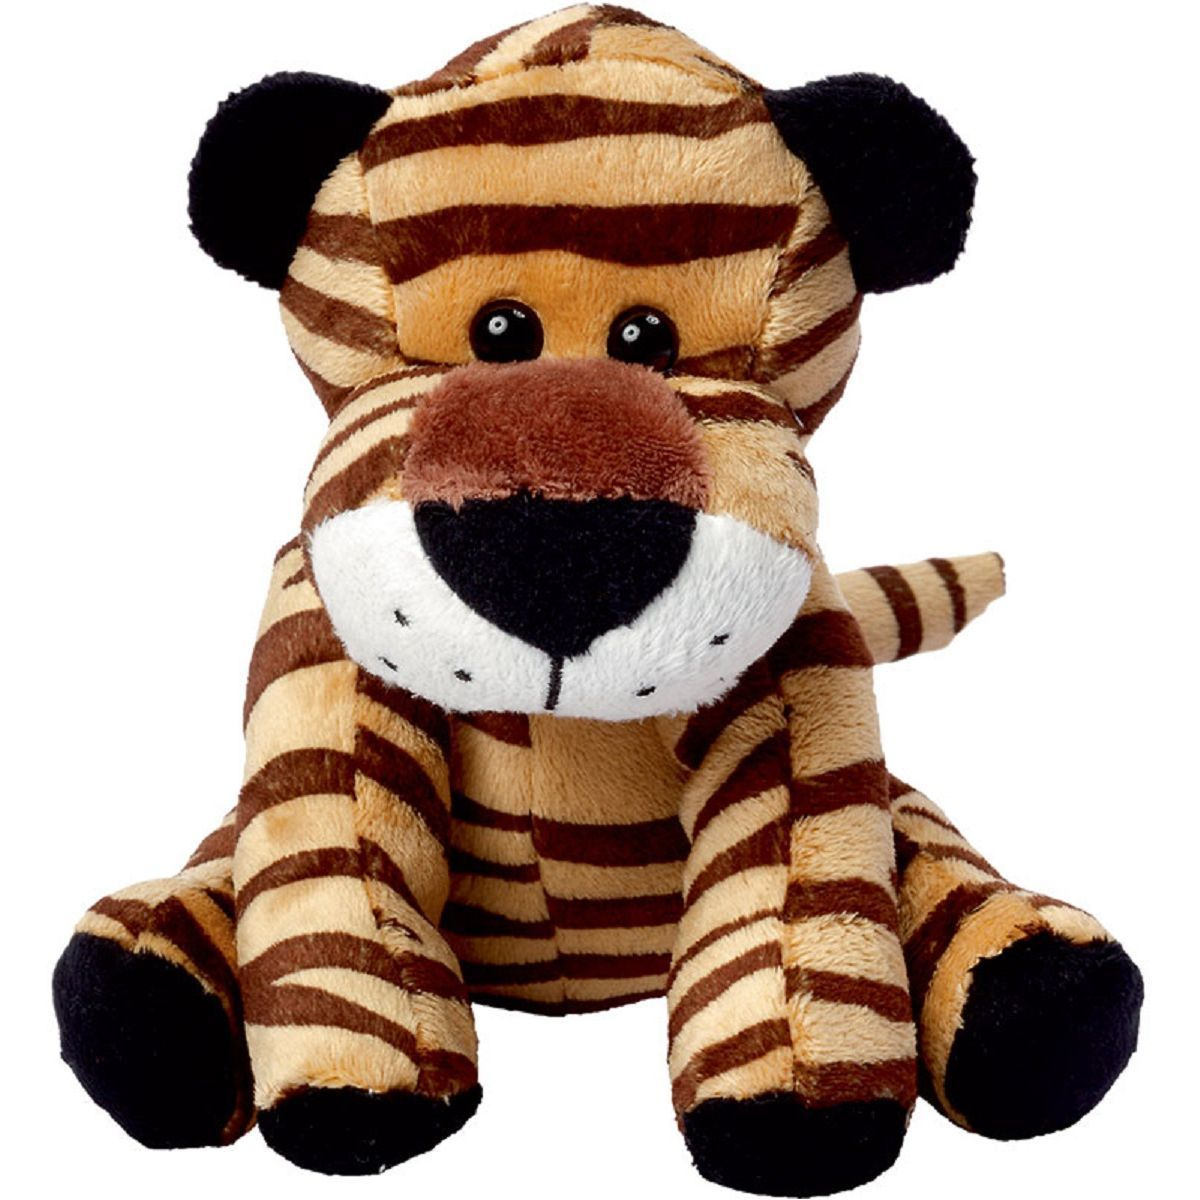 Peluche tigre - DAVID - 60032 marron